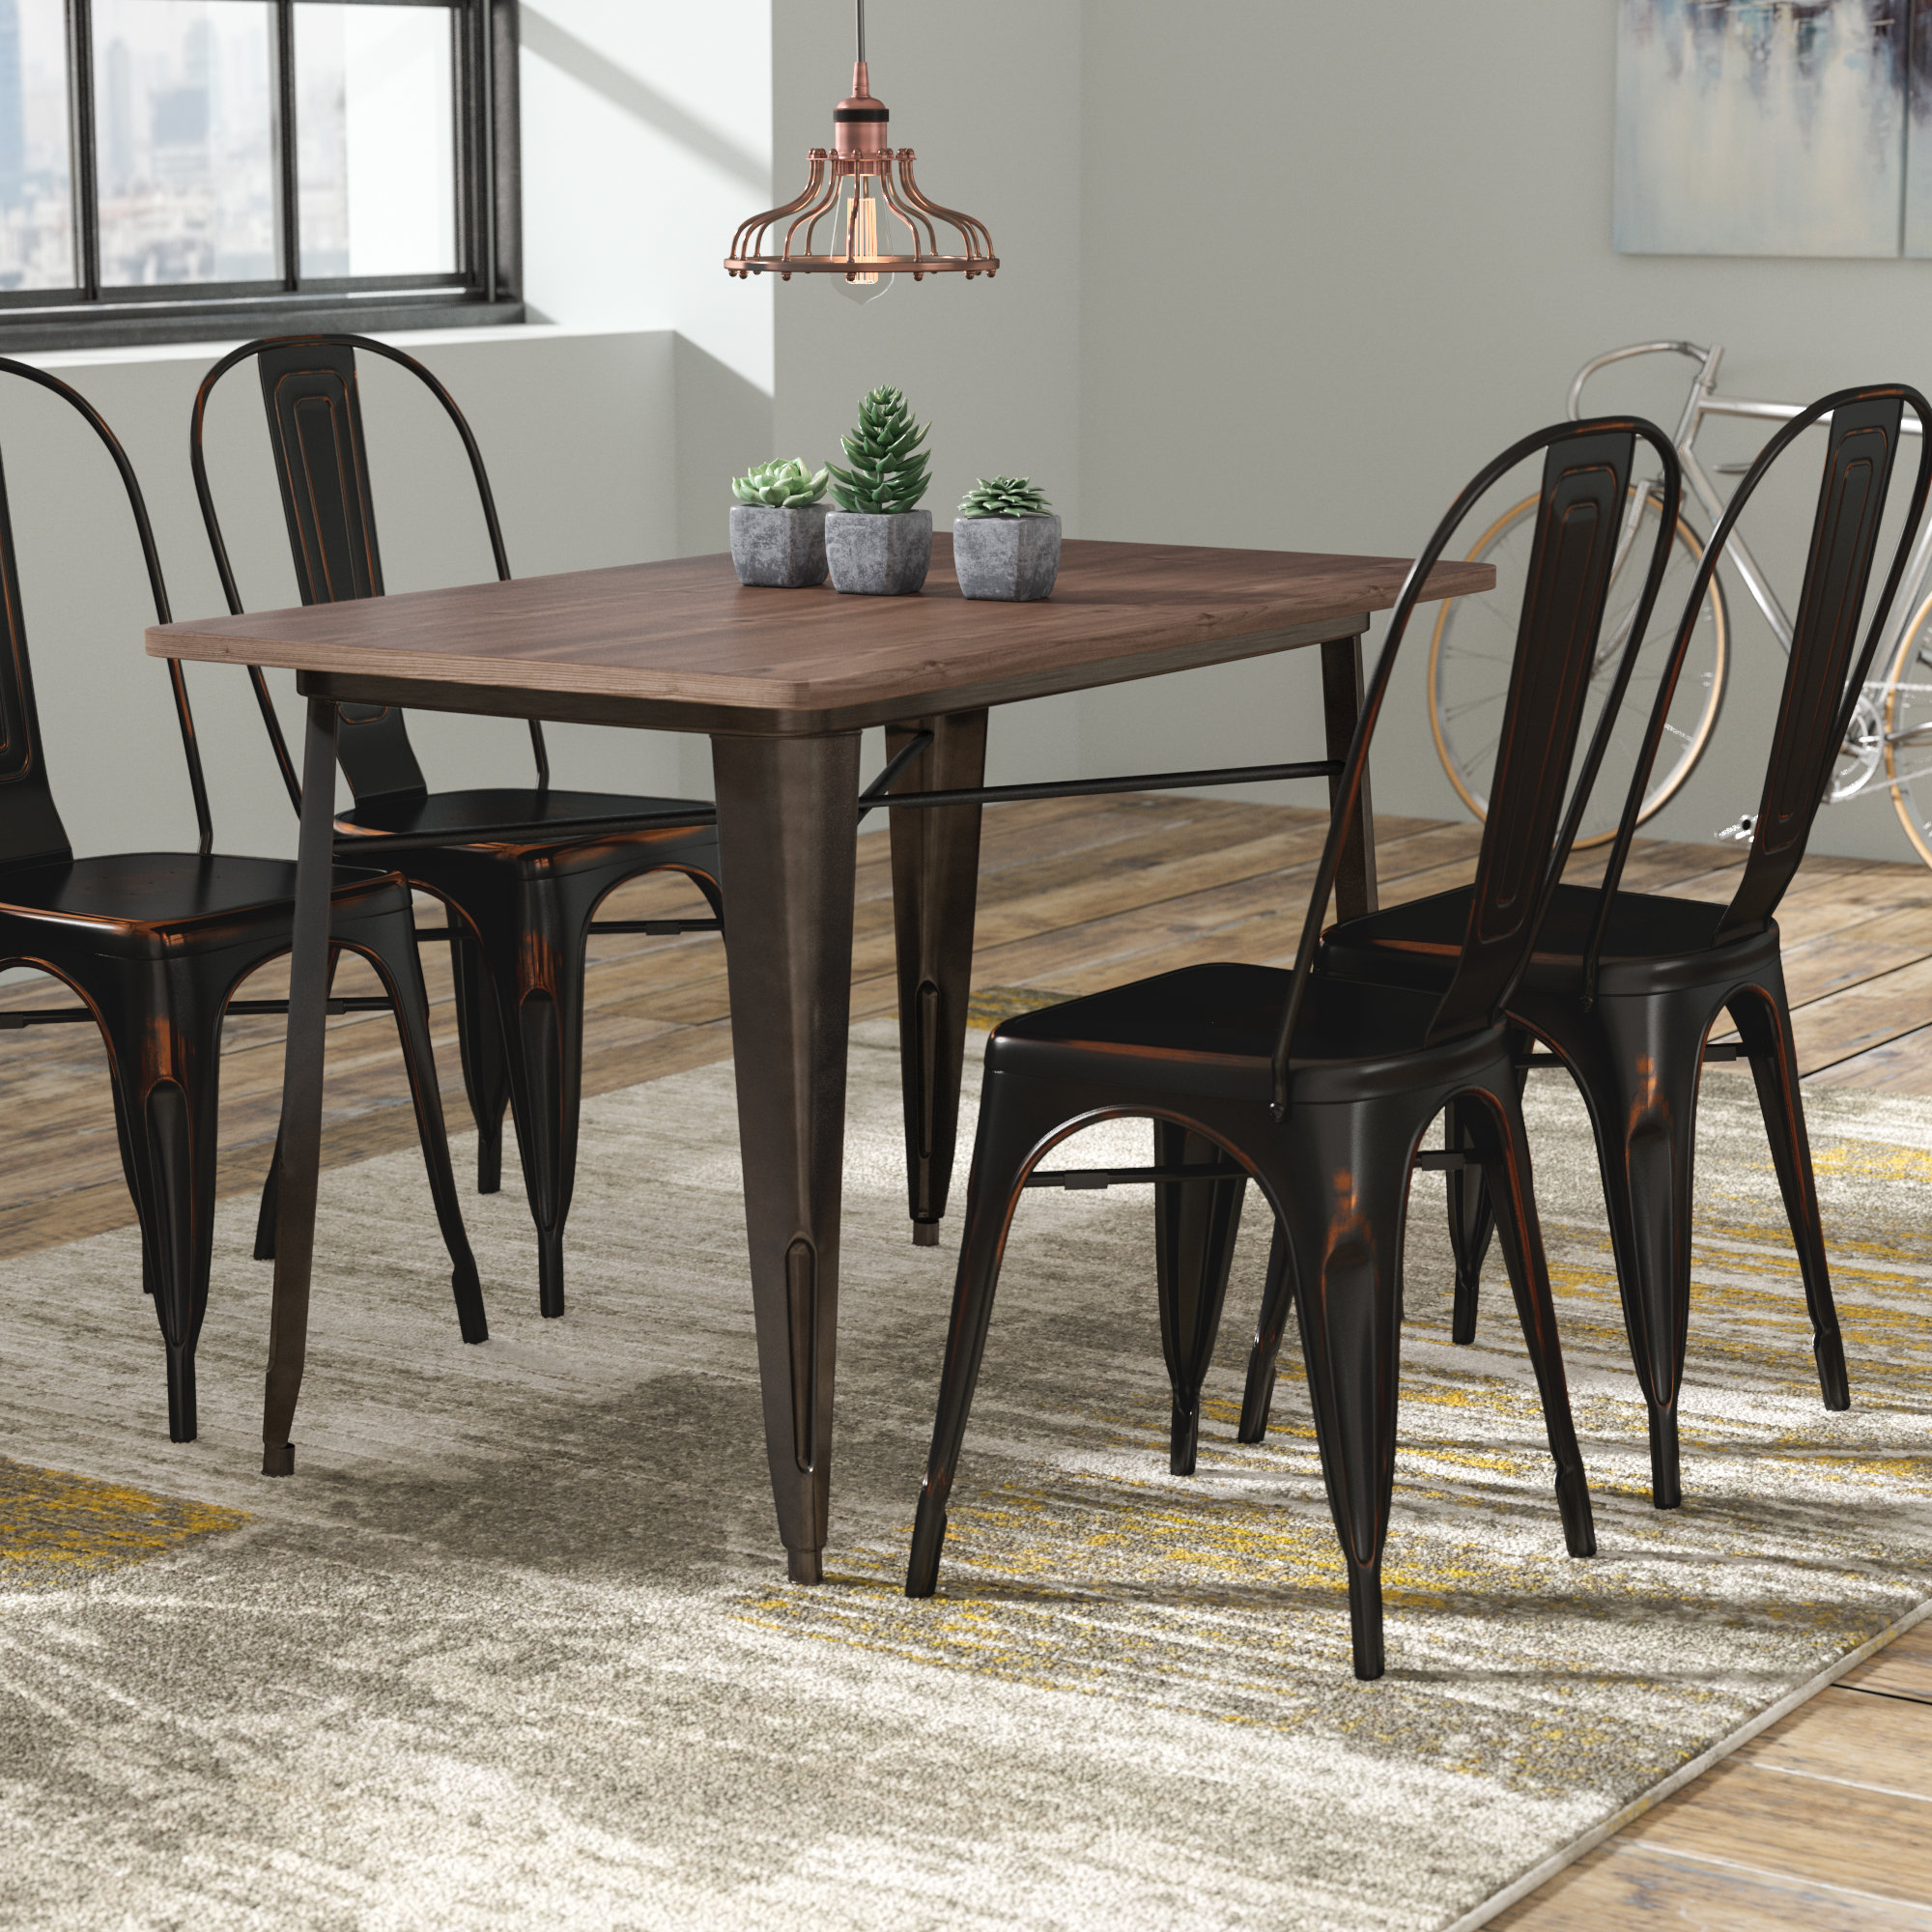 Croley 5 Piece Dining Set For Fashionable Tejeda 5 Piece Dining Sets (View 1 of 20)